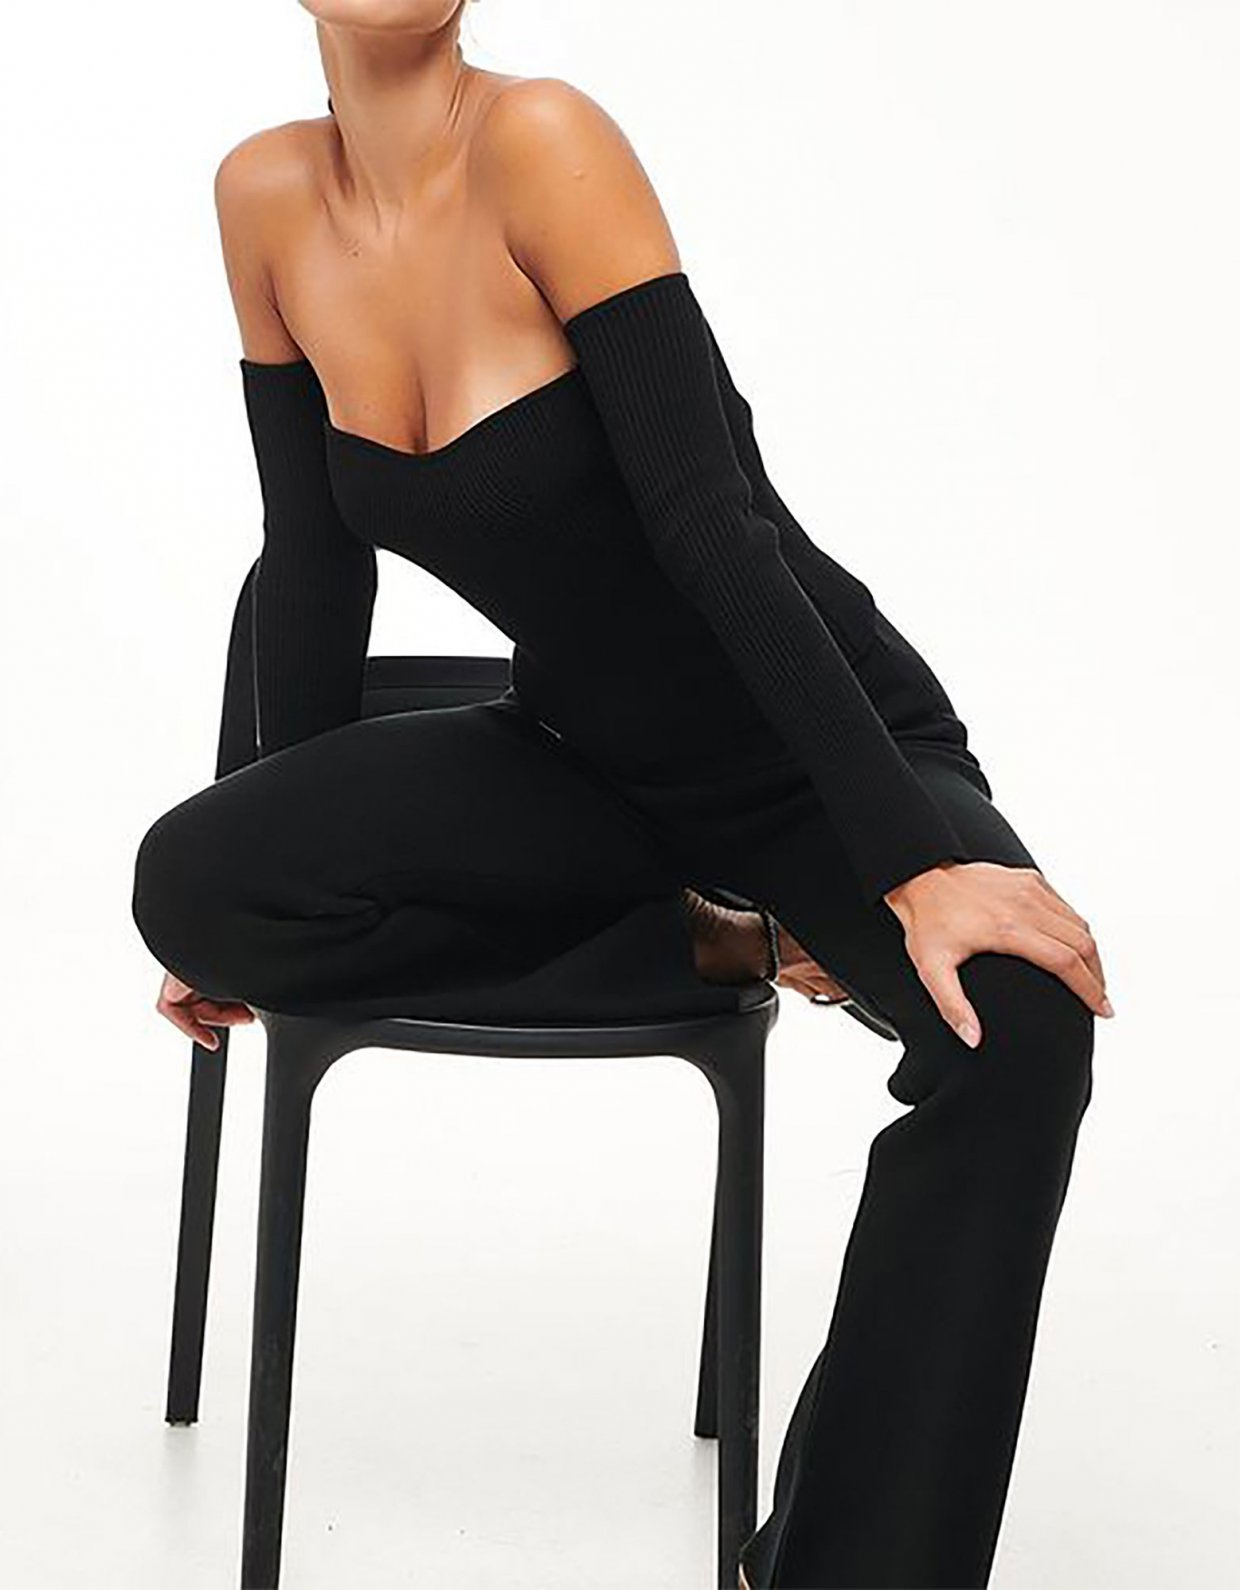 Combos Knitwear Combos W81 – Black knitted pants